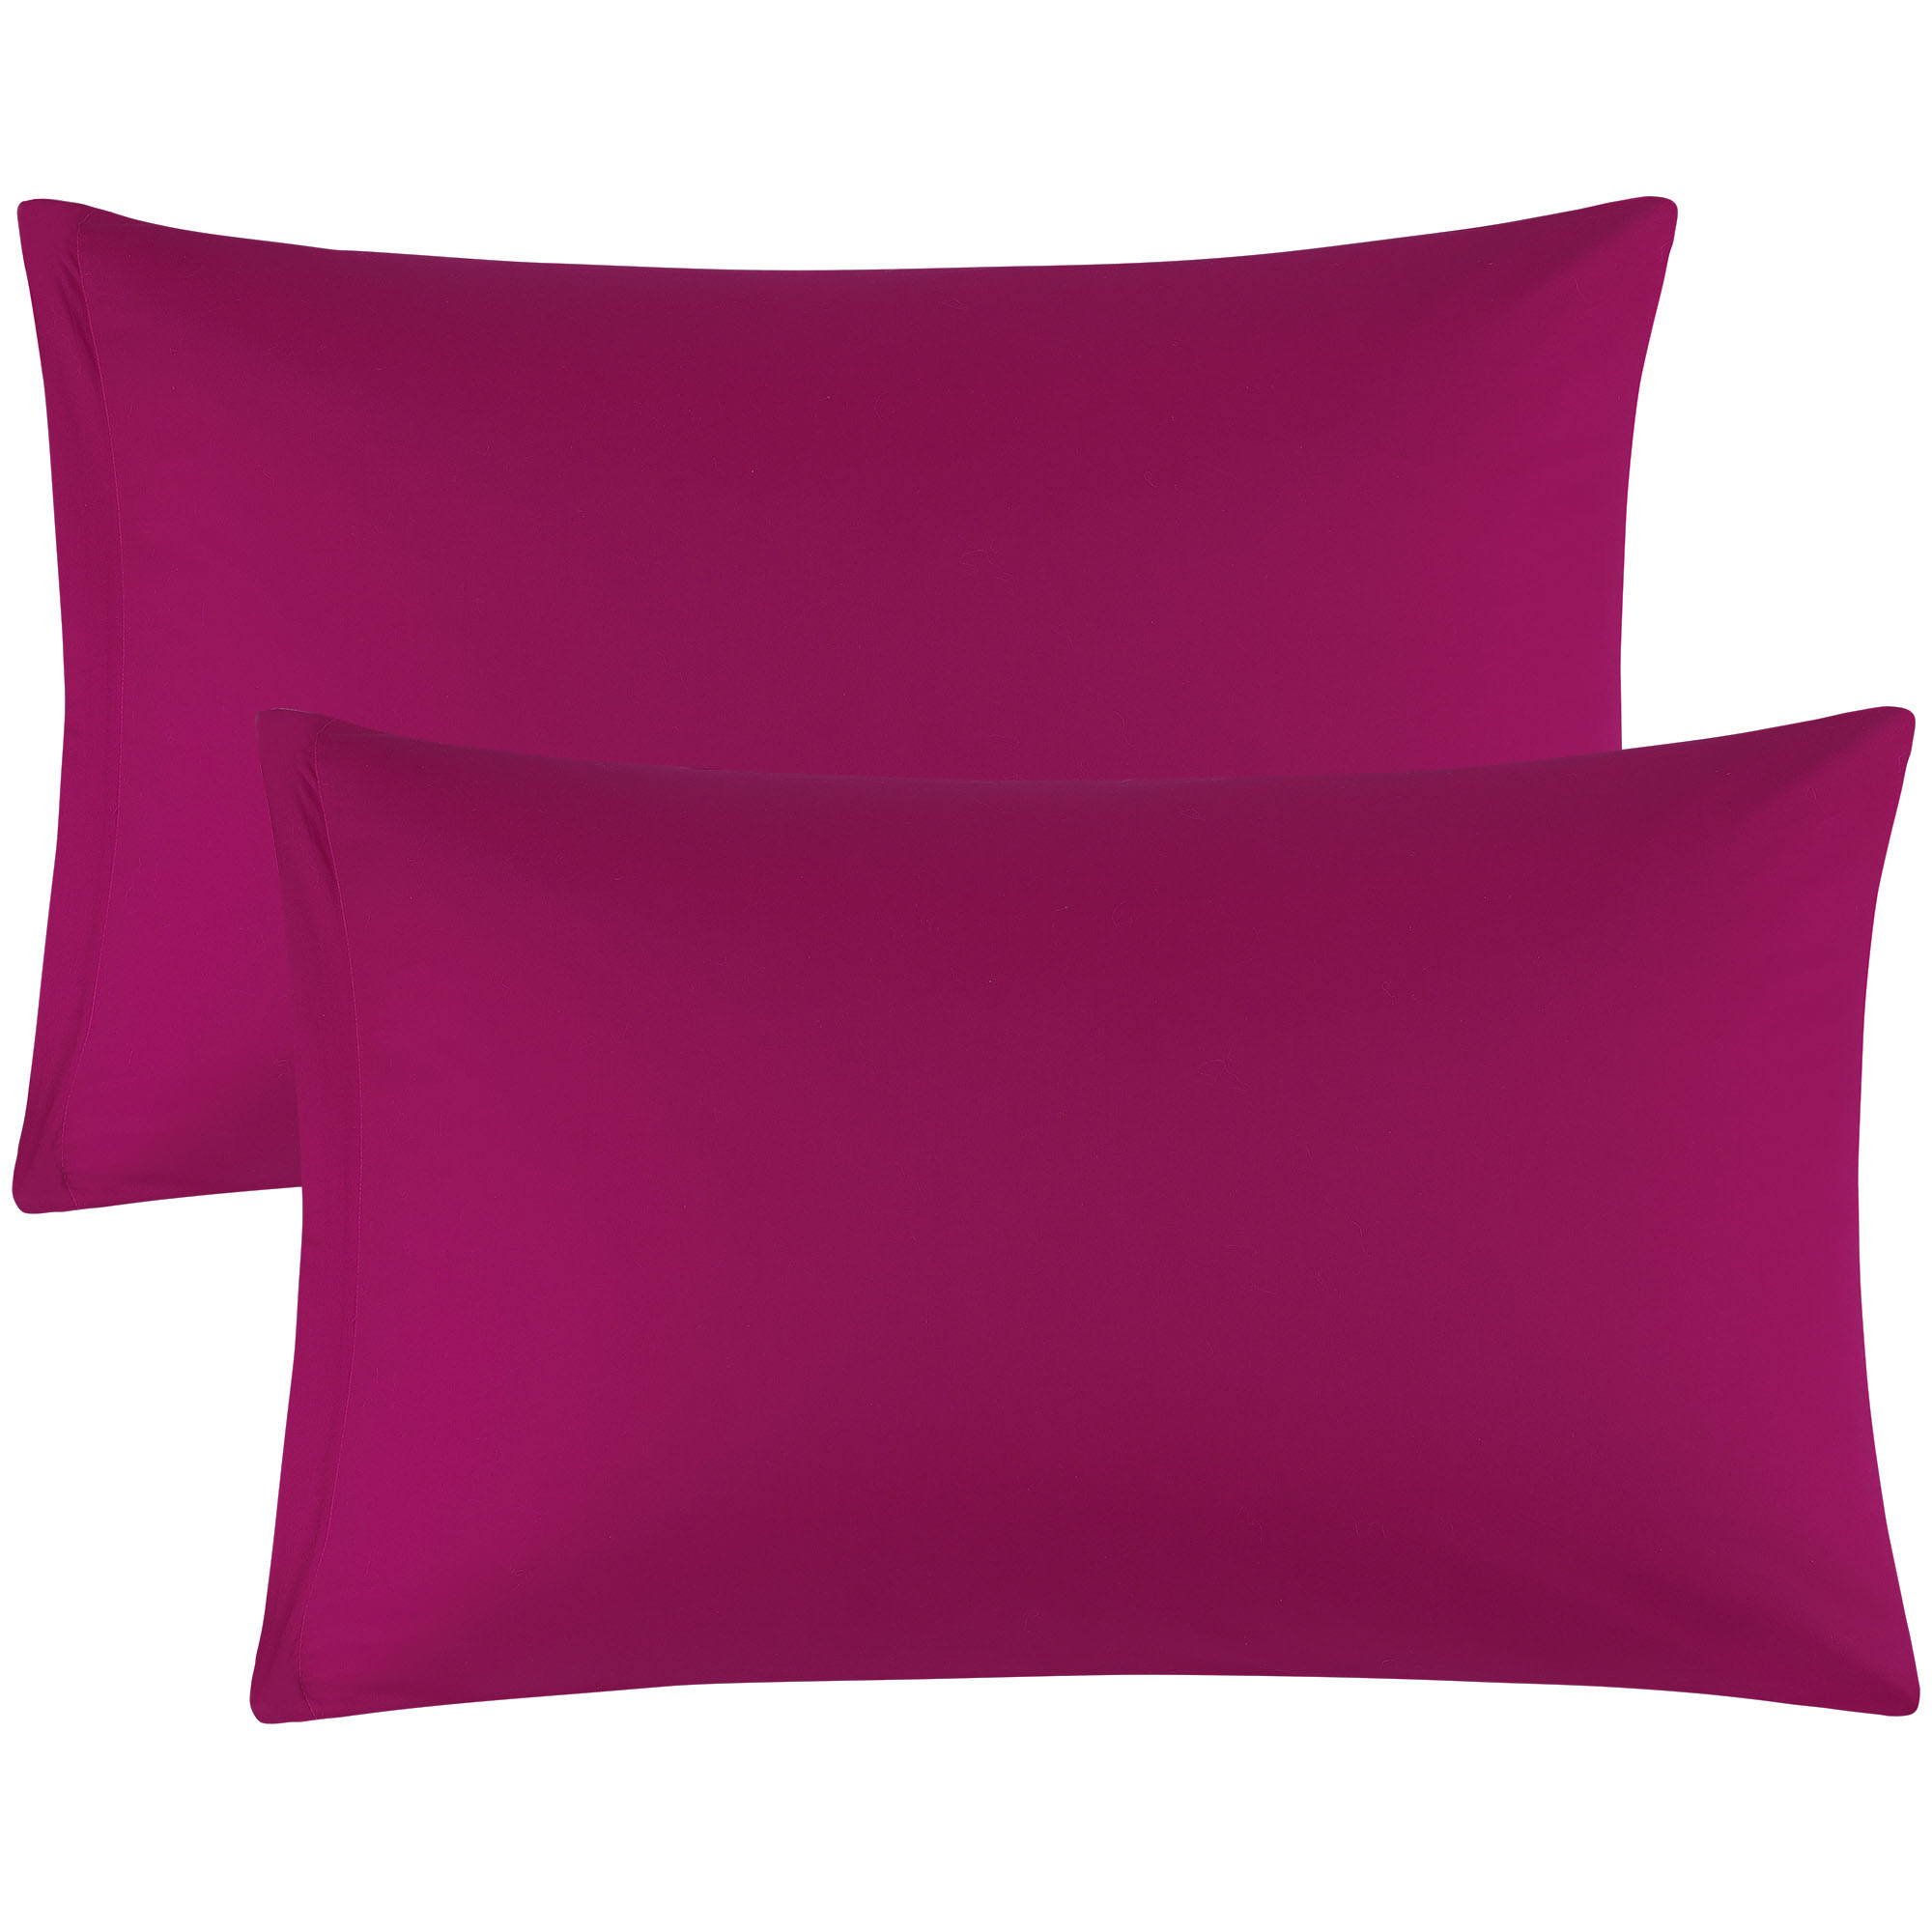 Zippered Cases Pillowcases Covers Egyptian Cotton 2-Pack (20 x 36 Inch, Fuchsia)